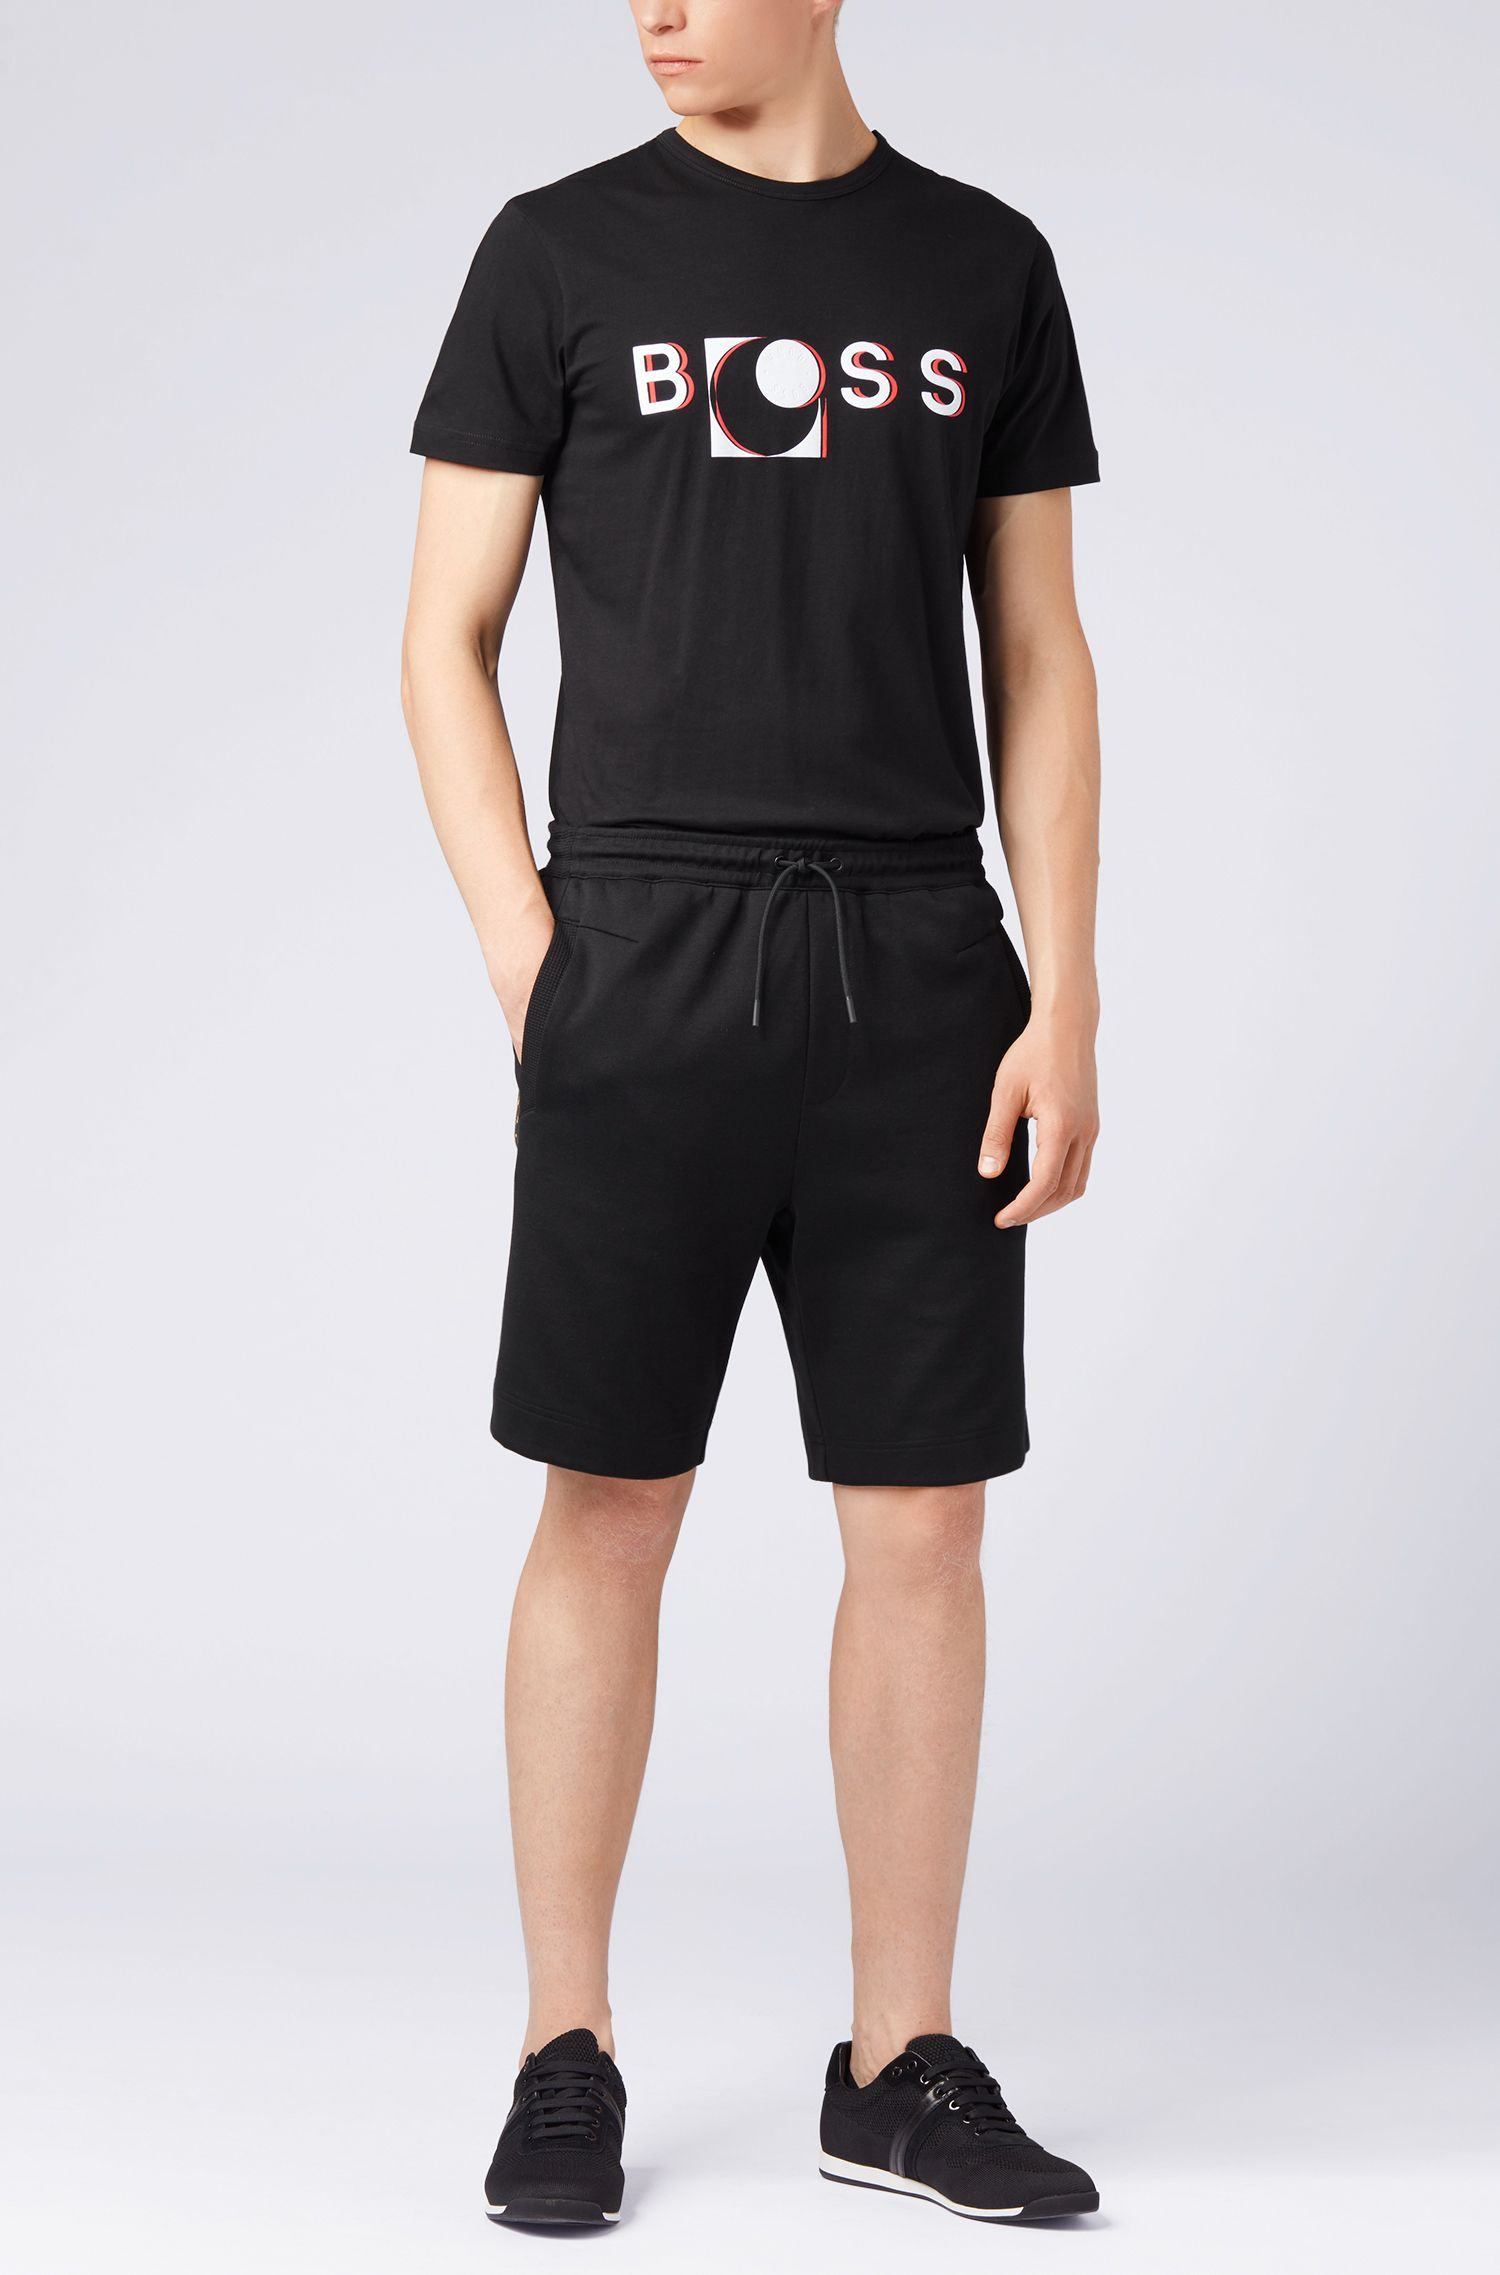 Short-sleeved T-shirt in cotton with printed logo artwork, Black